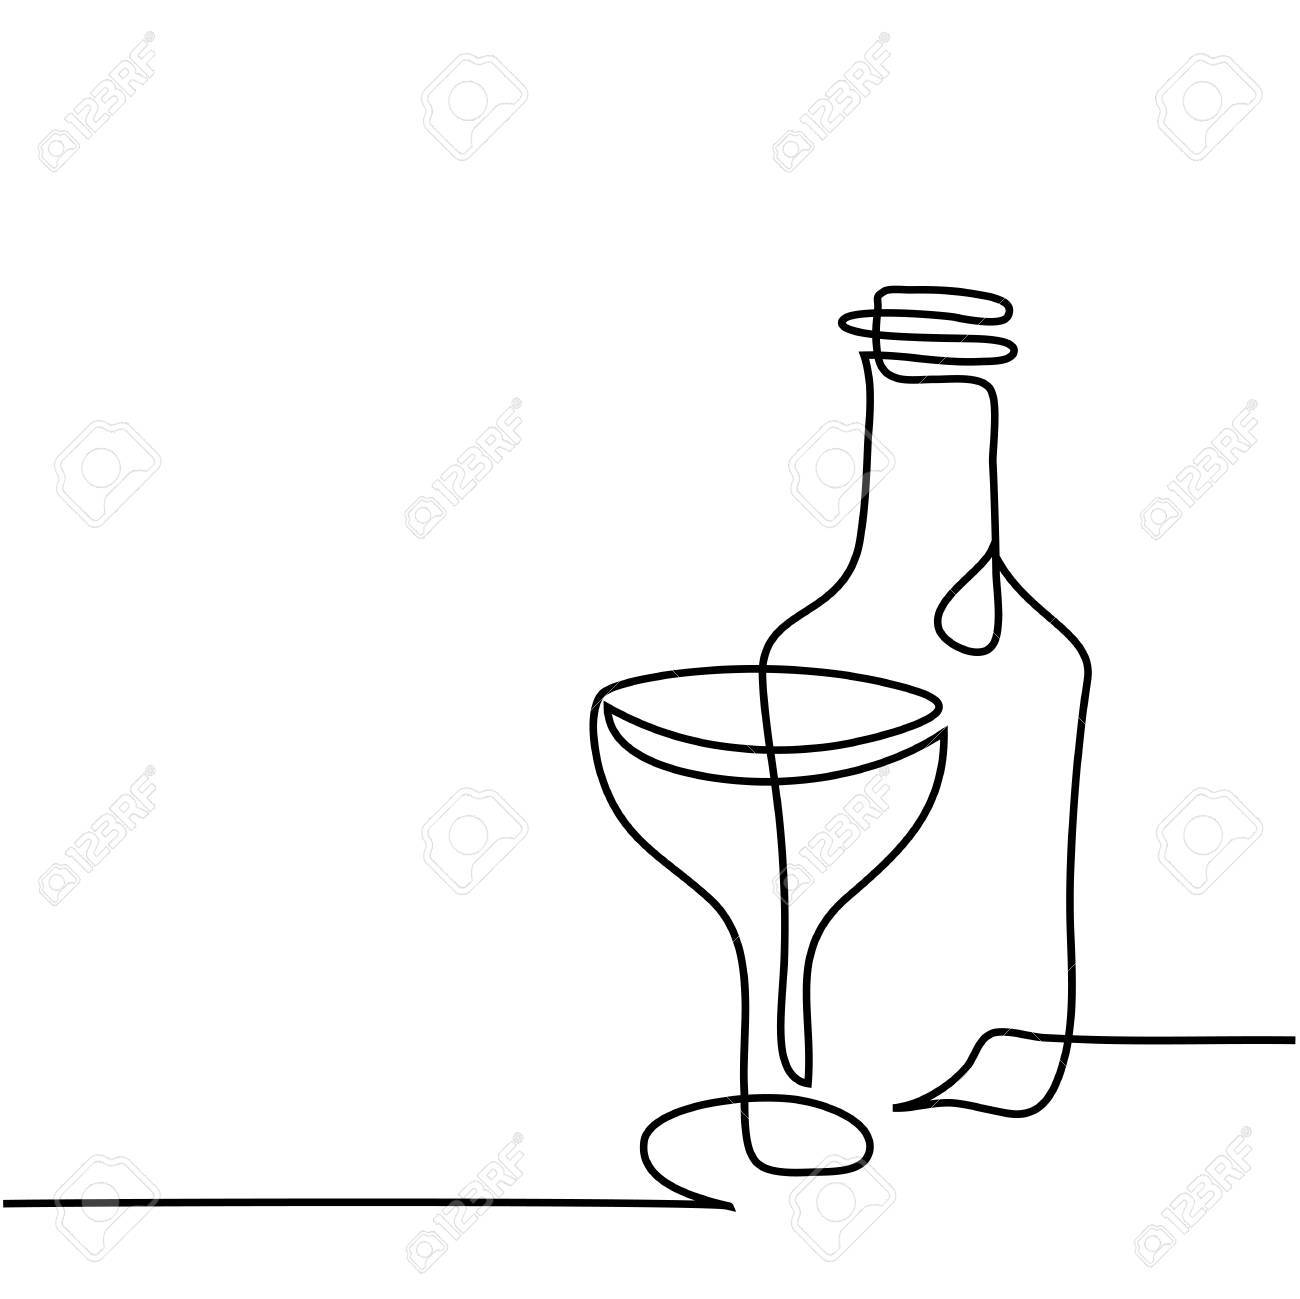 continuous line drawing wine bottle and glass contour black